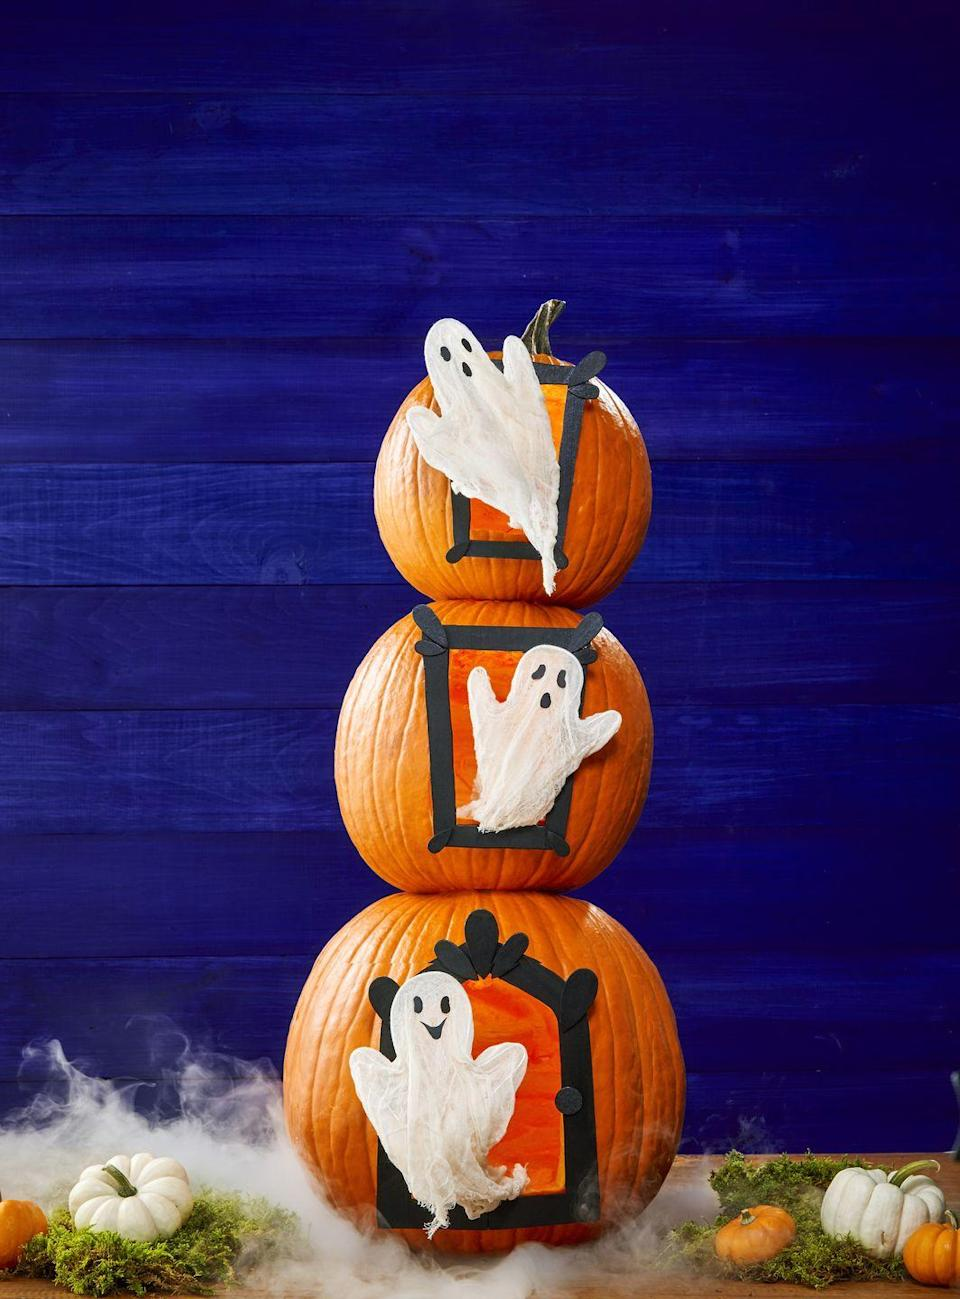 <p>Carve out doors on three pumpkins and have happy (or scary) ghosts pop out. You can even fill the pumpkins with fluff to look like smoke. </p>